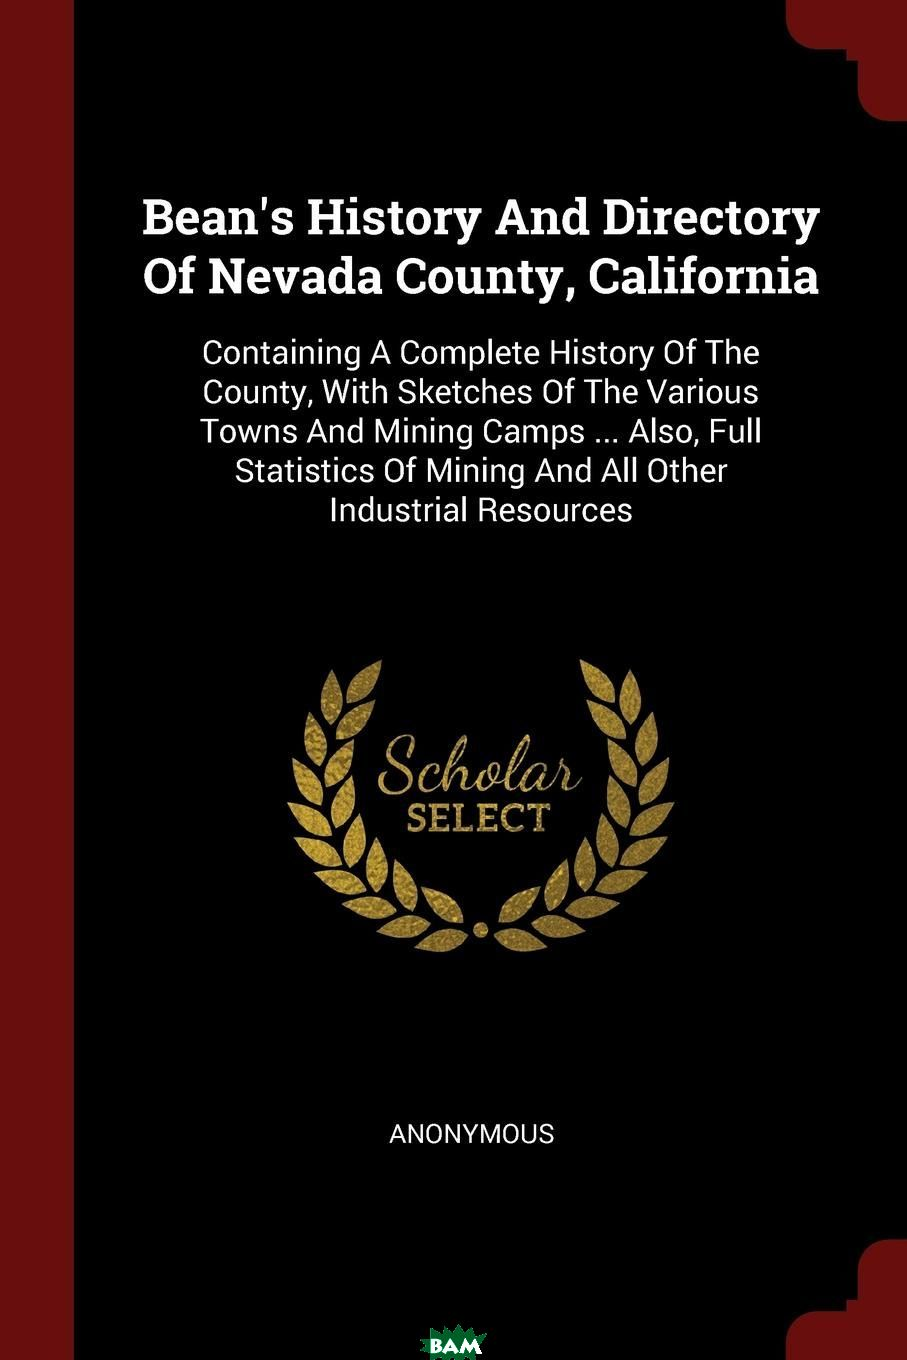 Купить Bean.s History And Directory Of Nevada County, California. Containing A Complete History Of The County, With Sketches Of The Various Towns And Mining Camps ... Also, Full Statistics Of Mining And All, M. l`abbe Trochon, 9781376175677